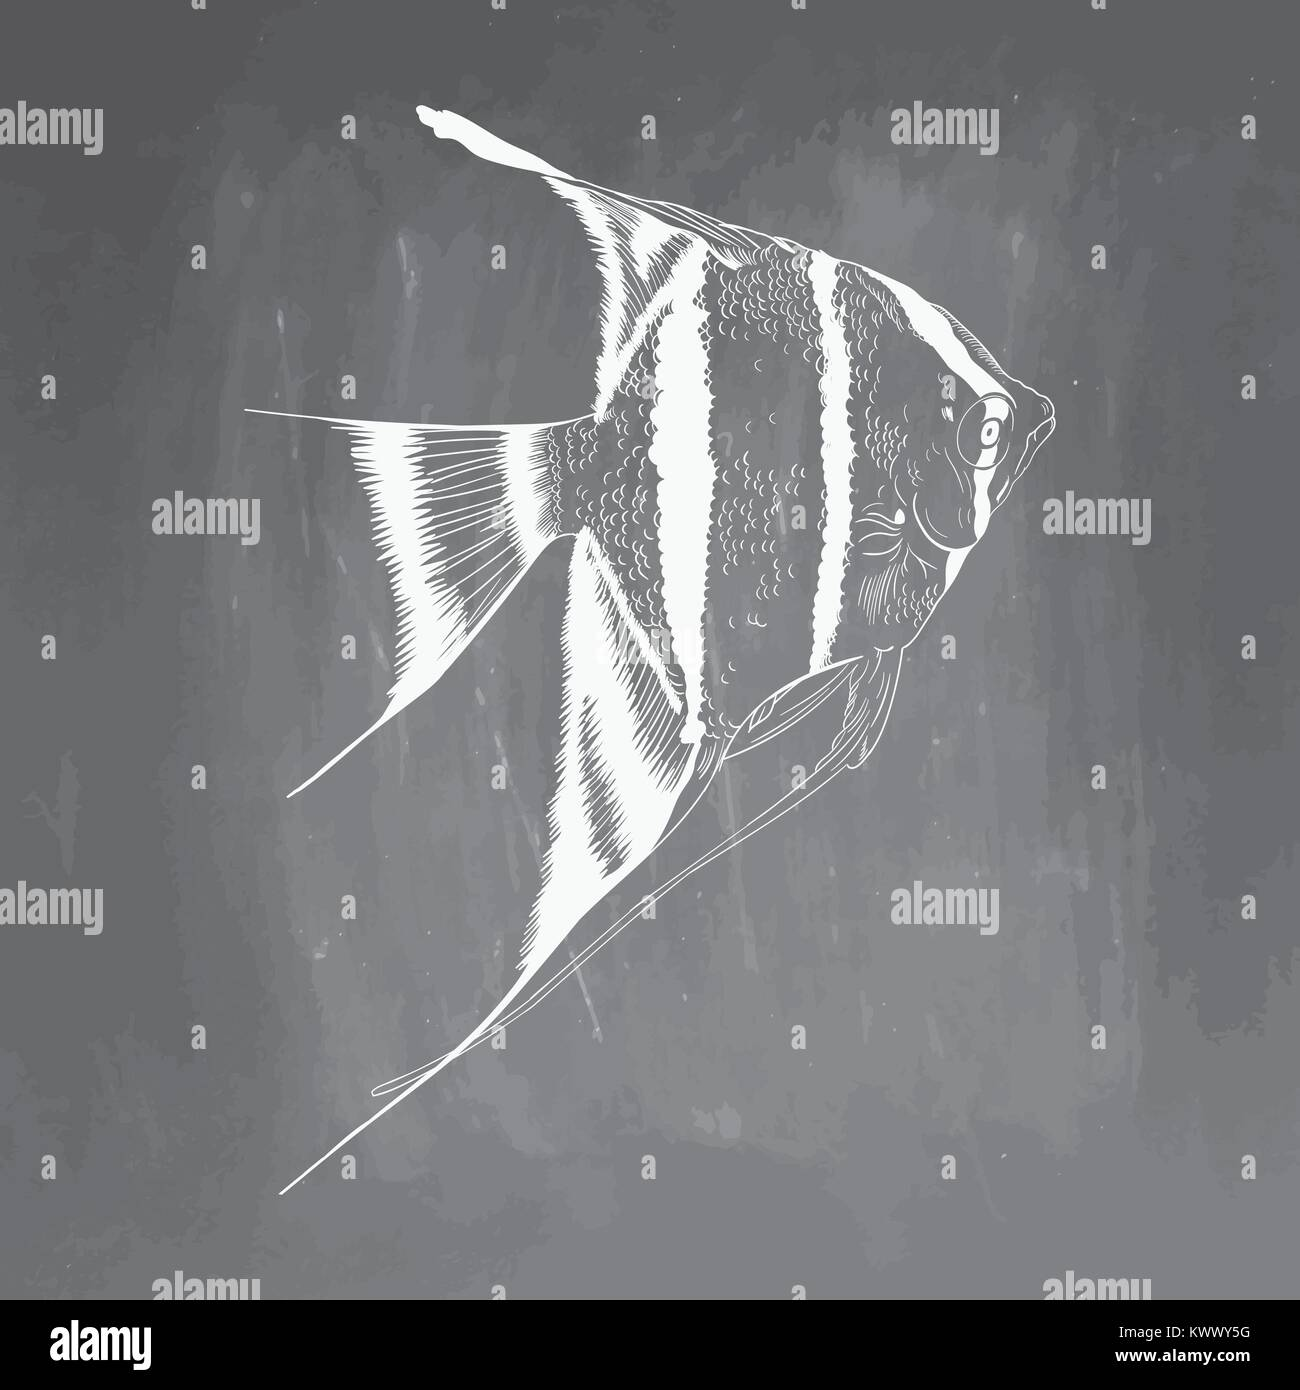 Hand Drawn Aquarium Fish Sketch Elements Isolated On Chalkboard